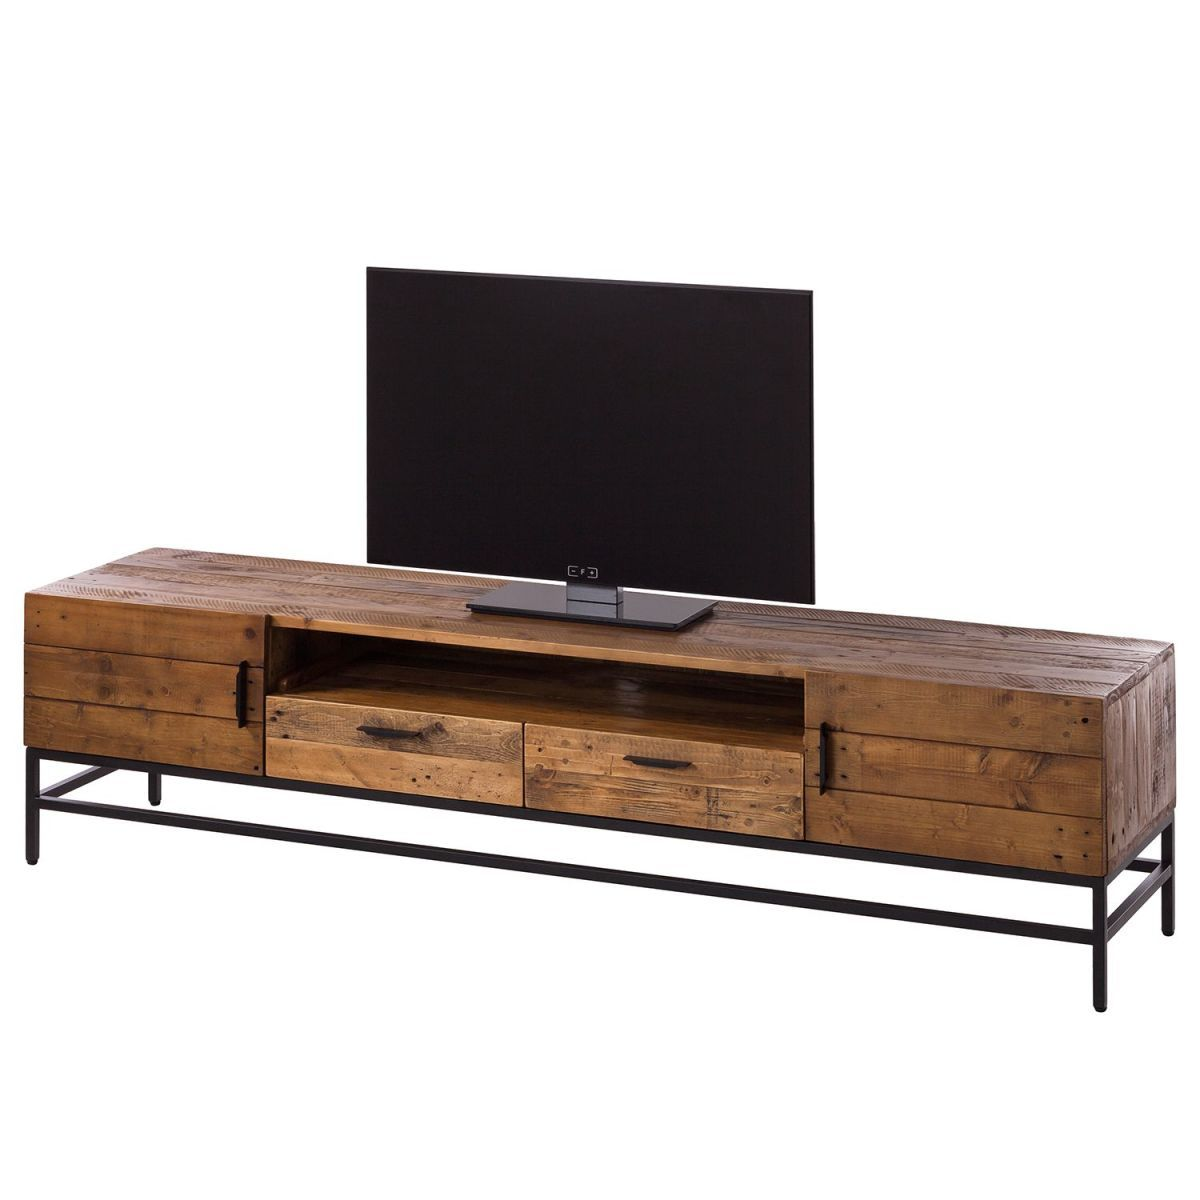 tv lowboard grasby ii altholz pinie metall pinie dunkel schwarz ars manufacti. Black Bedroom Furniture Sets. Home Design Ideas